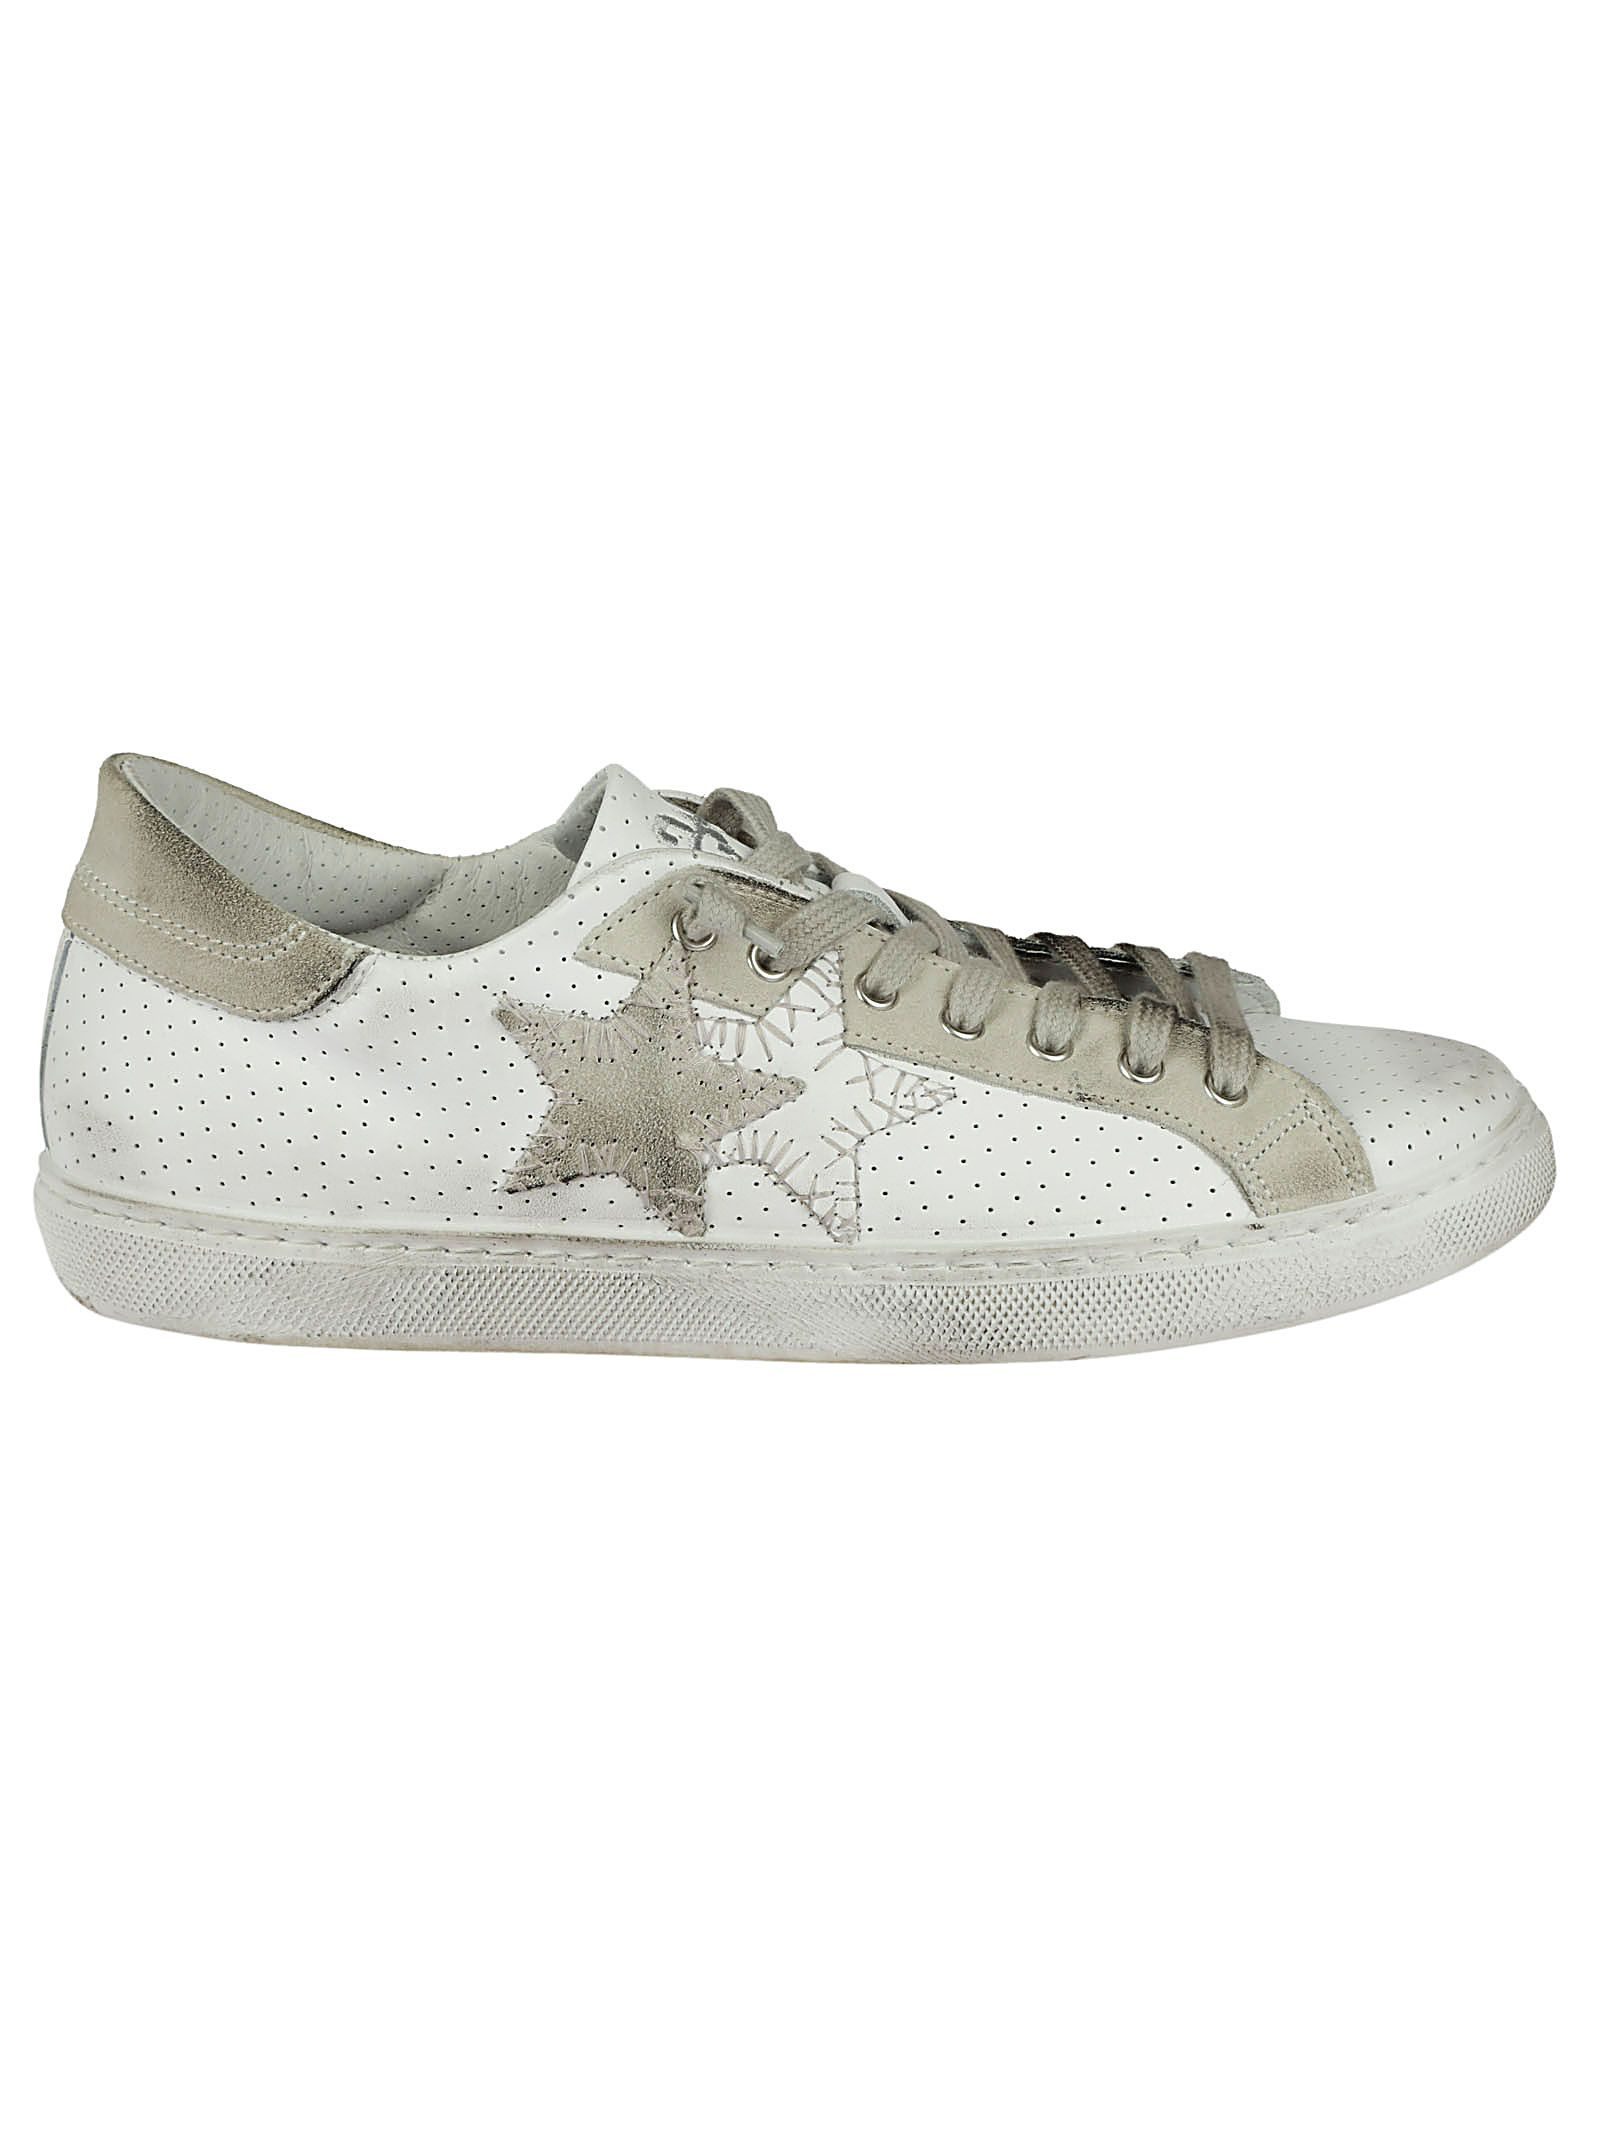 2STAR 2 STAR LOW ICE SNEAKERS